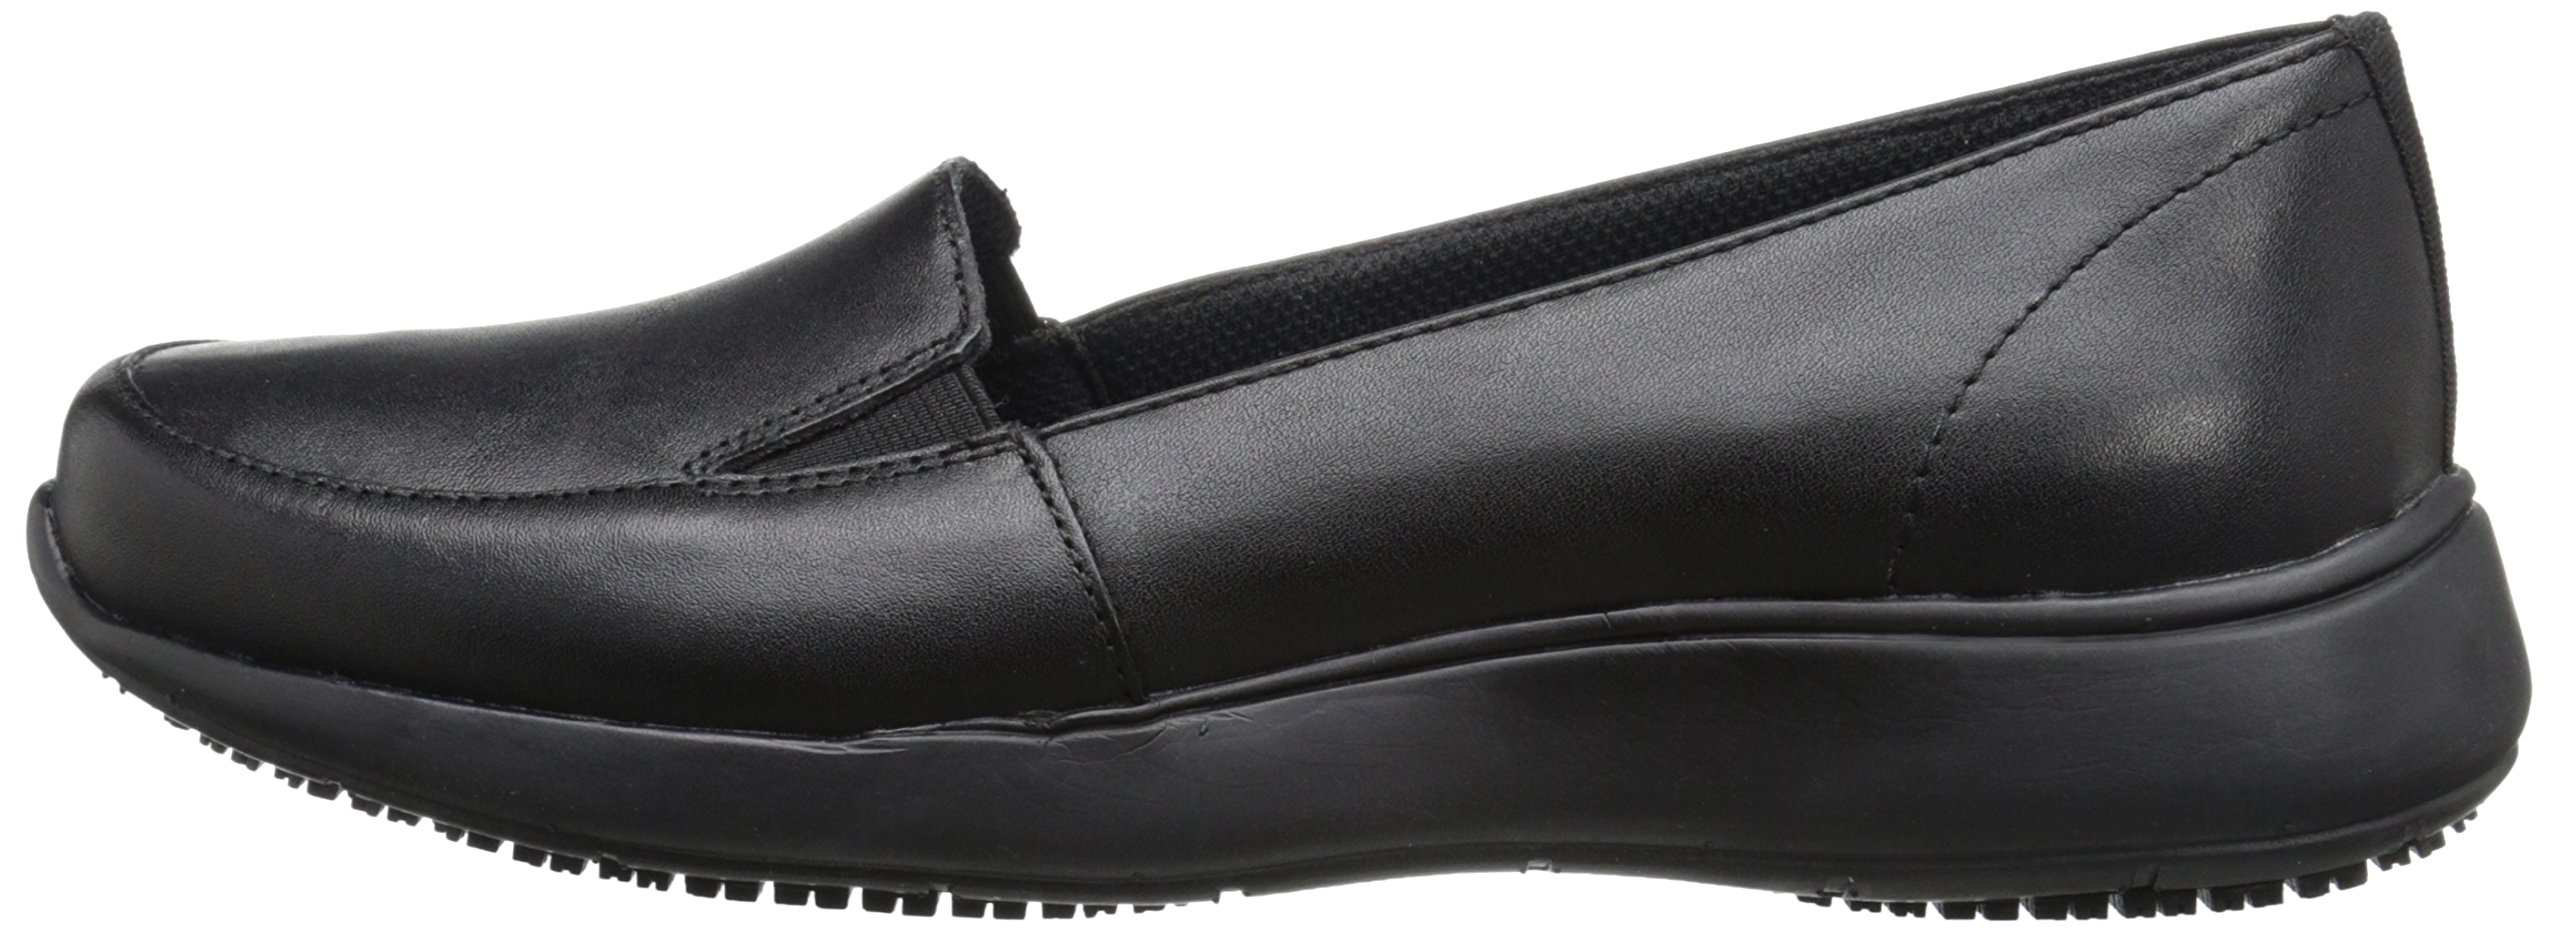 Dr. Scholl's Women's Lauri Slip On, Black, 8 M US by Dr. Scholl's Shoes (Image #5)